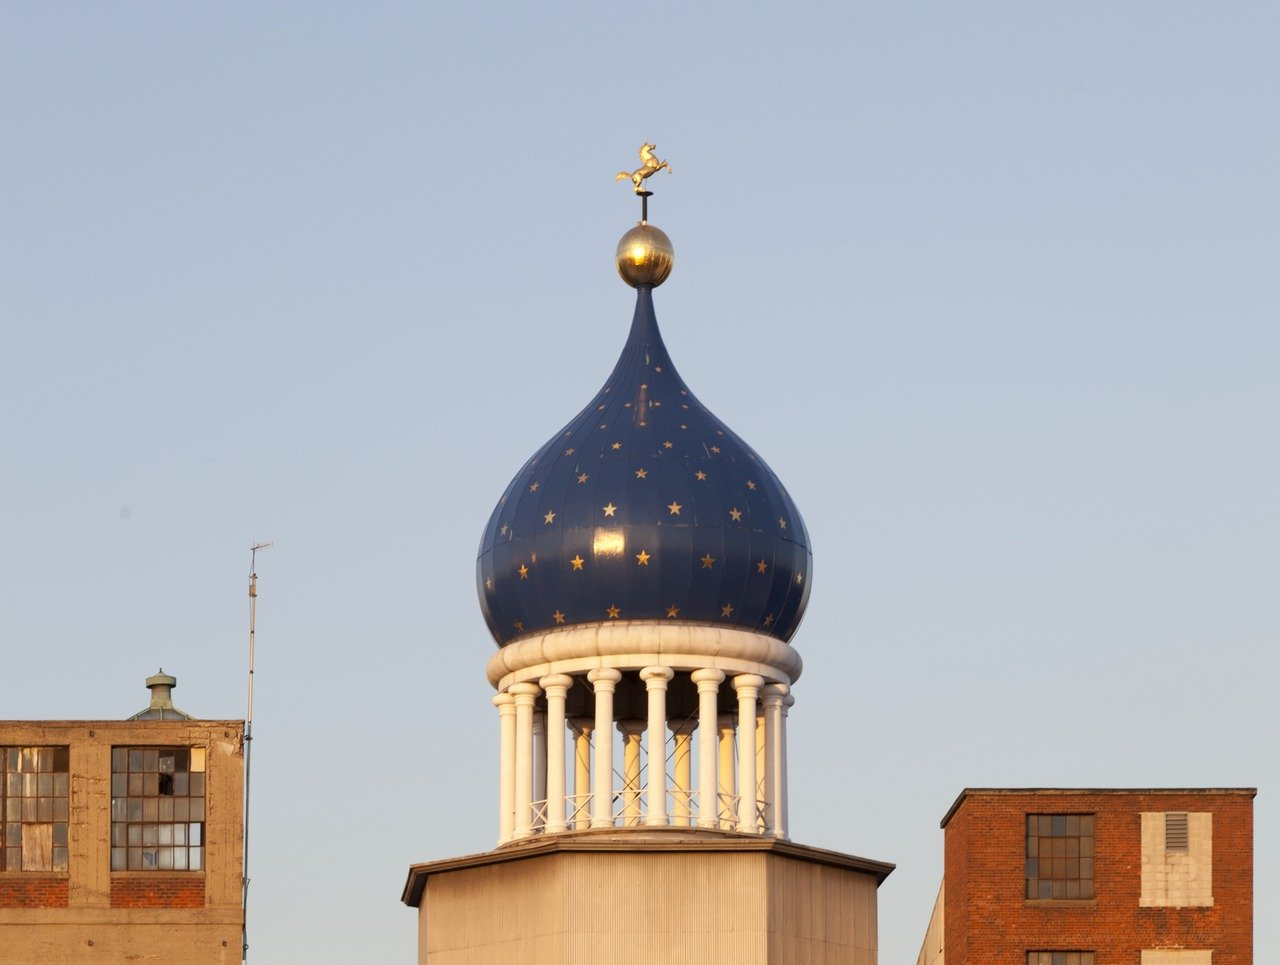 The famous dome circa 2011, complete with replica colt.